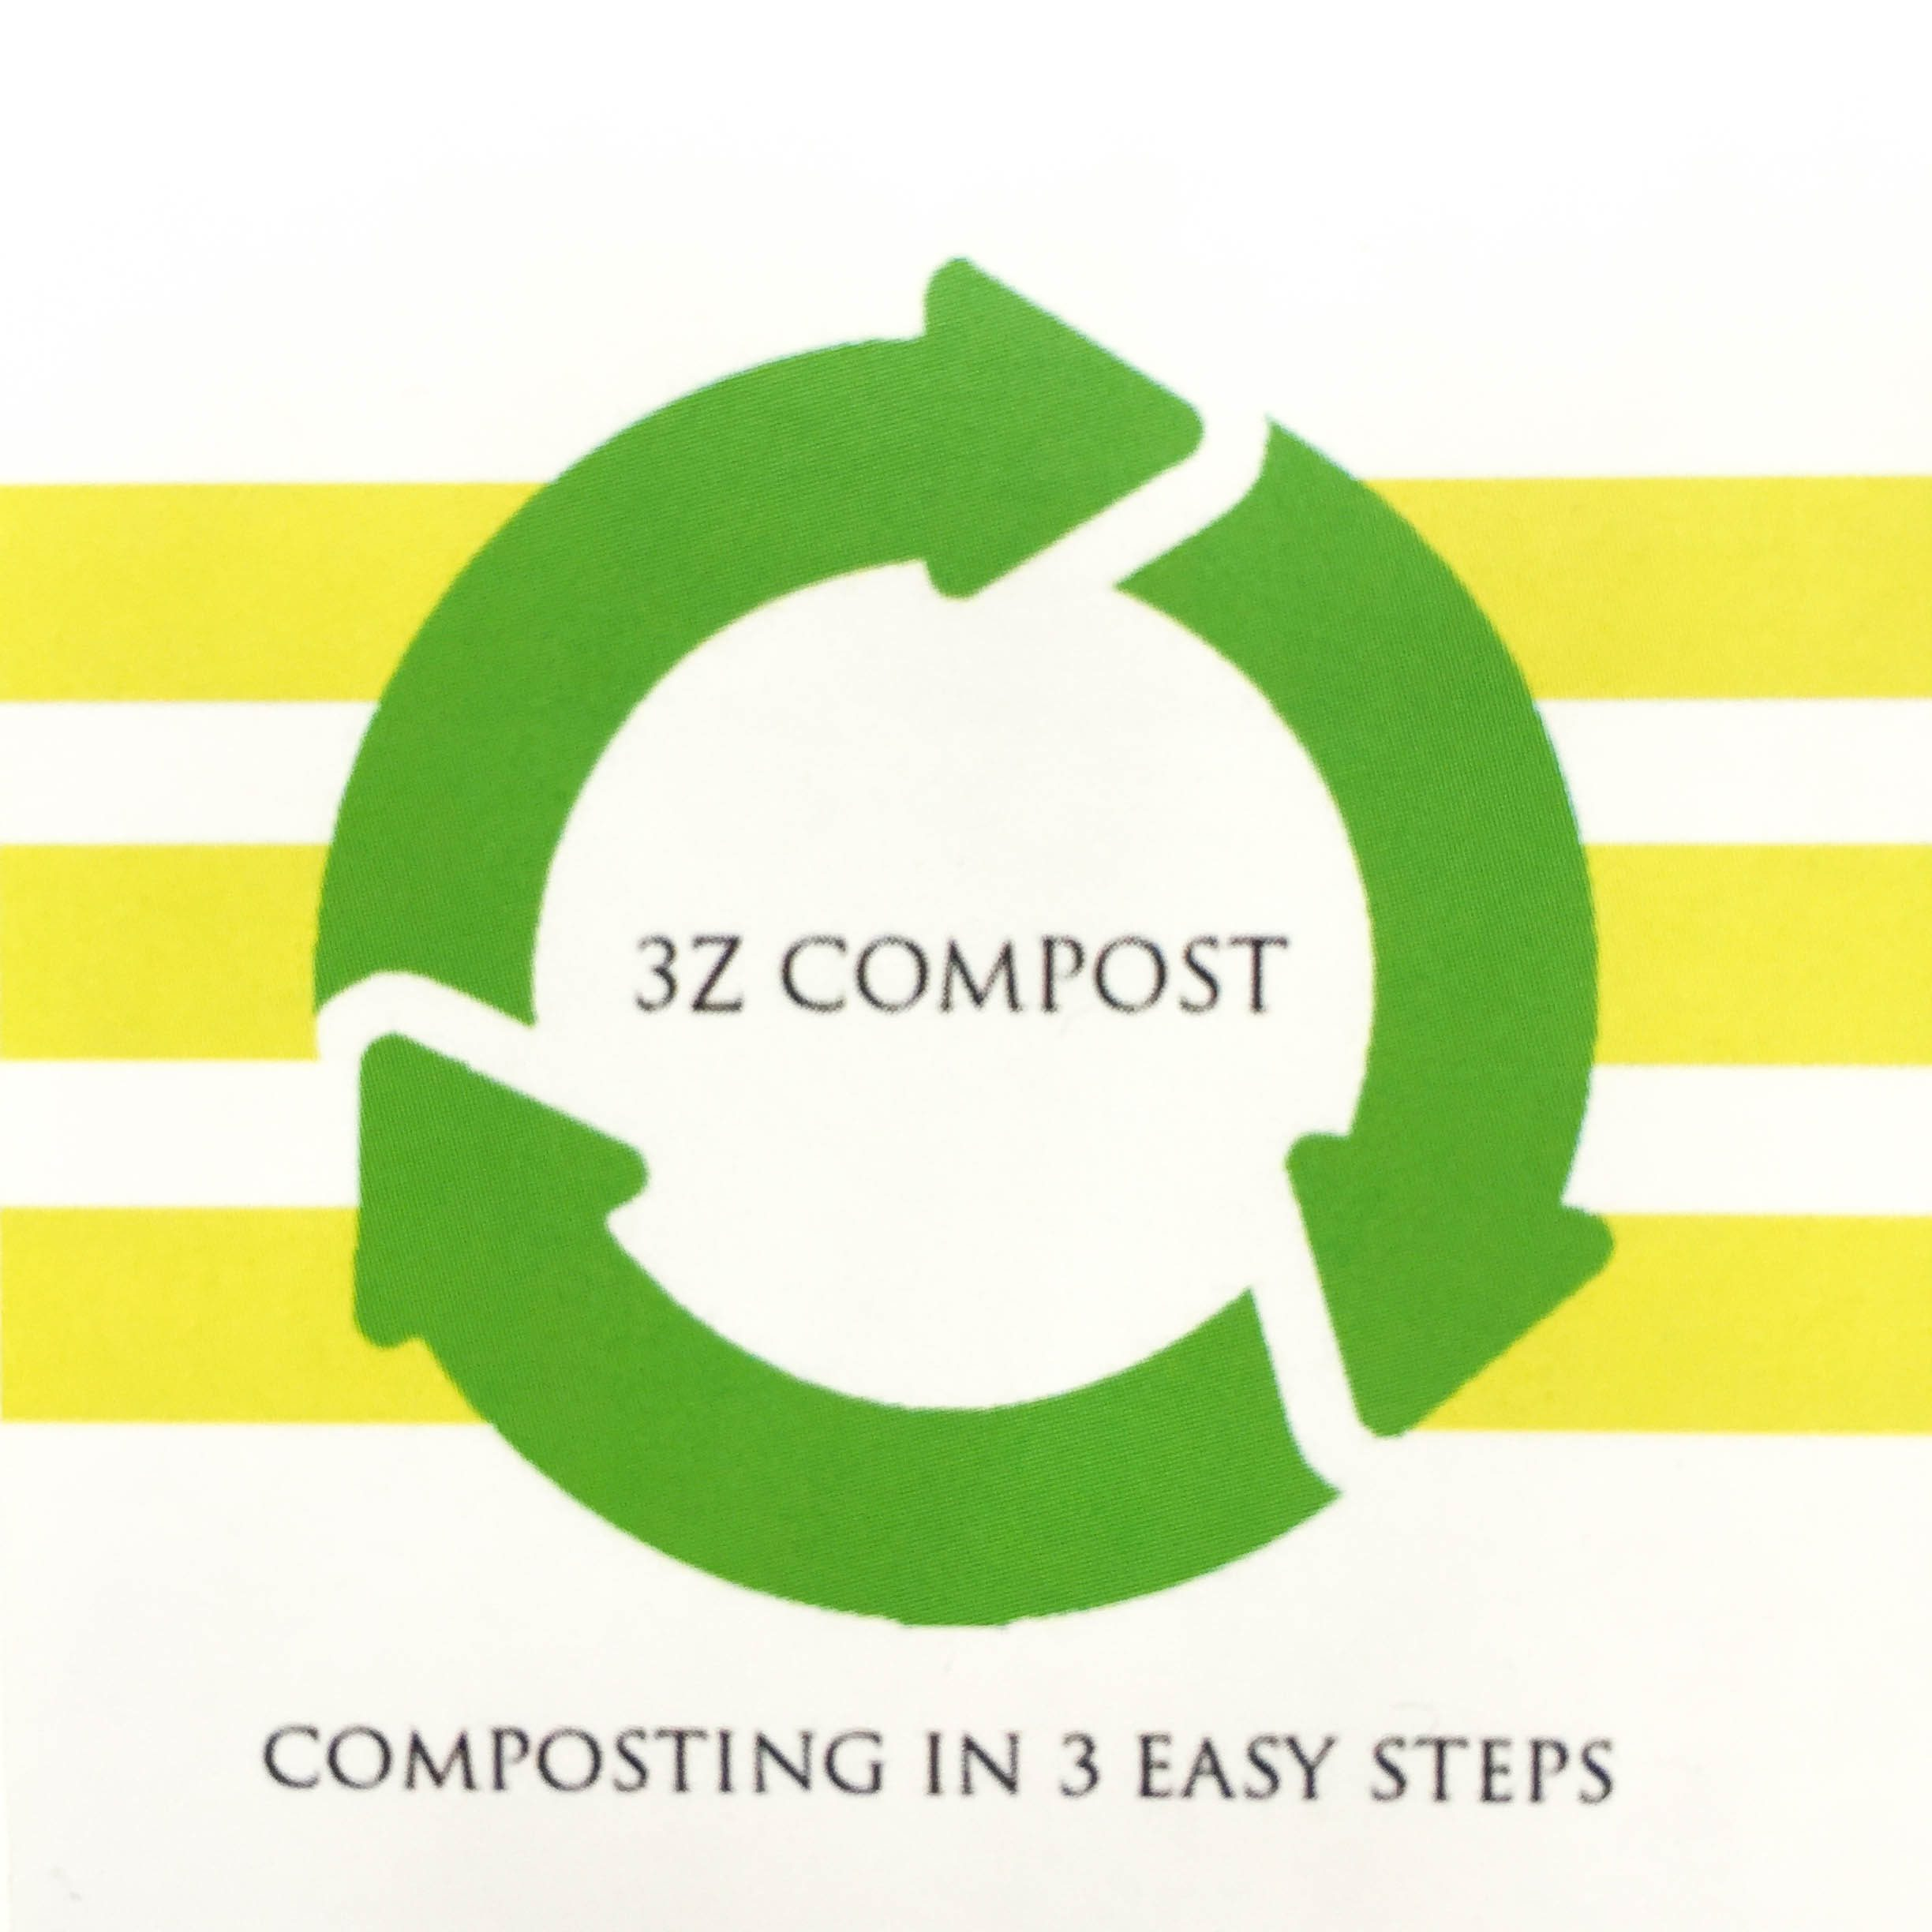 3Z Compost